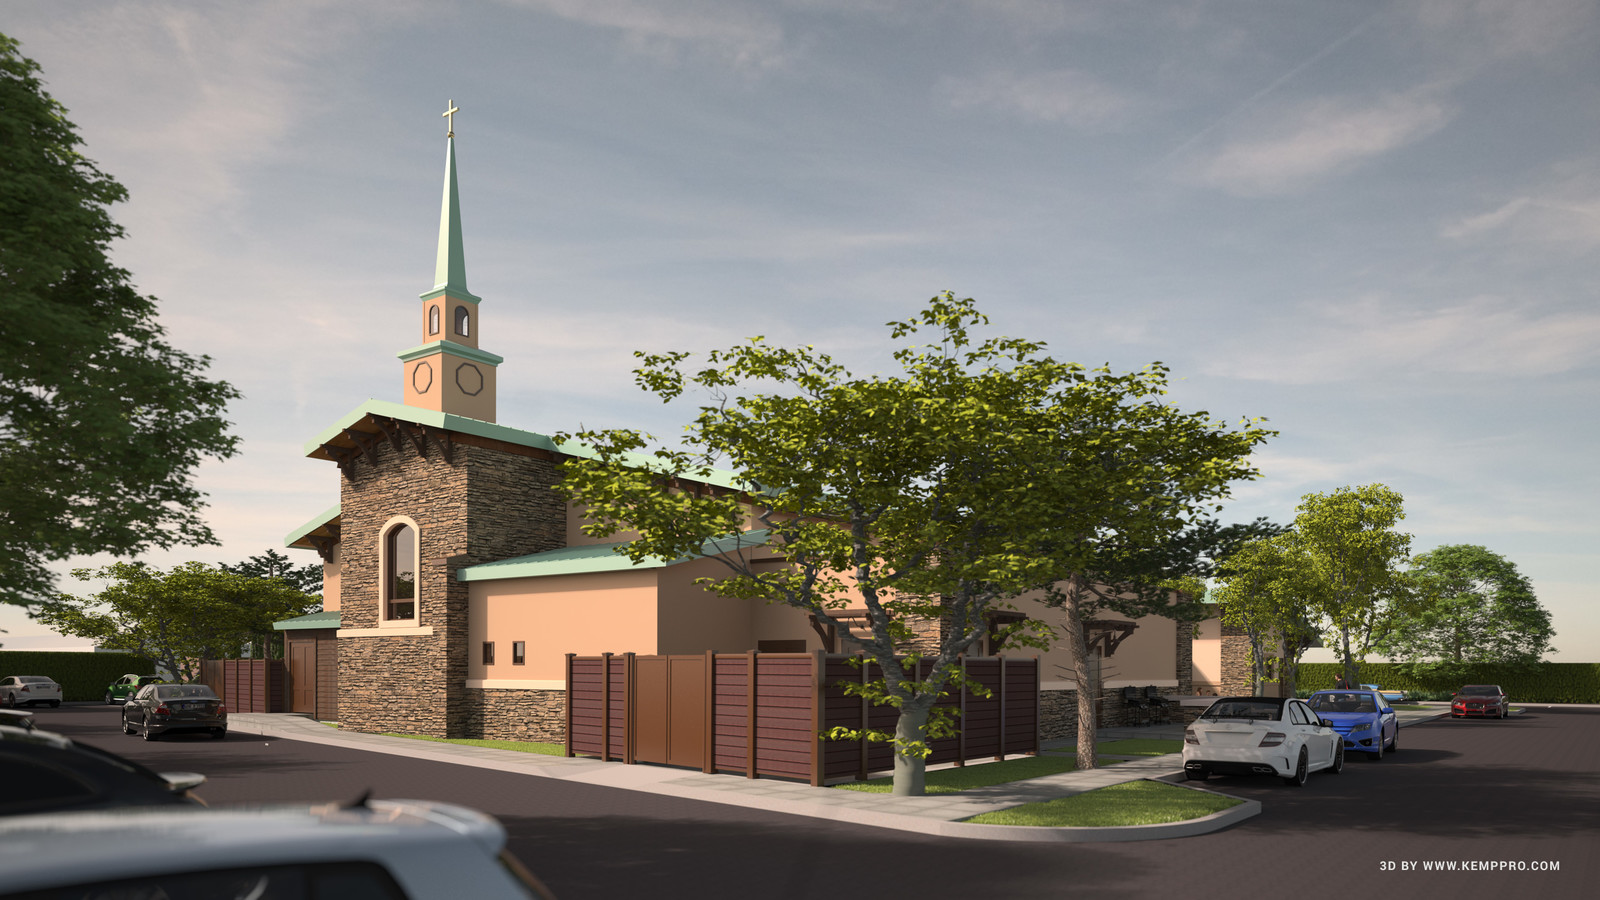 #SketchUp 2017 + #TheaRender  HFAC-CUP-Final-2nd-sky-Persp-NE-opt1-DK-2_CK  The Holy Family Catholic Church, American Canyon, CA. Project  Architect: Liturgical Environs PC  HDR by HDRI-SKIES found here: http://hdri-skies.com/shop/hdri-sky-300/